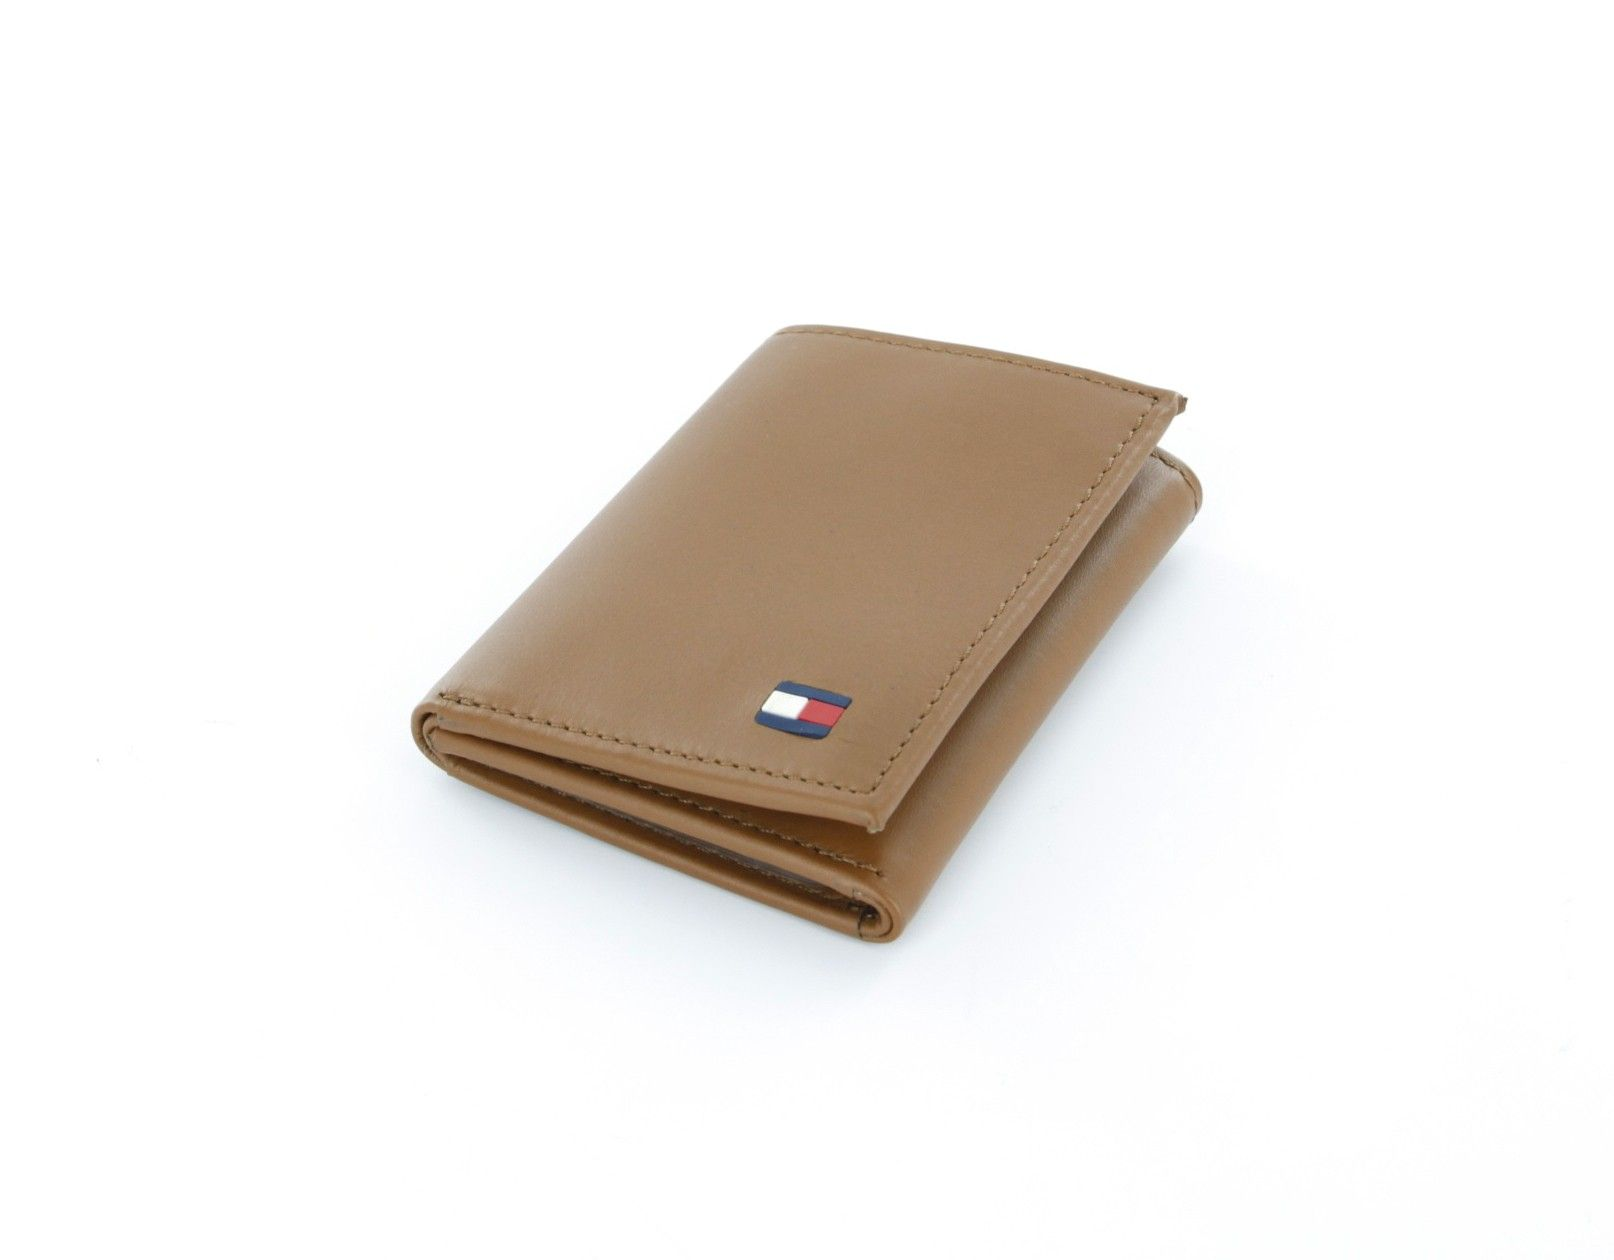 29 67 Tommy Hilfiger British Tan Genuine Leather Trifold Wallet With Id Window Wallets Tommyhilfiger F Tommy Hilfiger Wallet Leather Leather Trifold Wallet